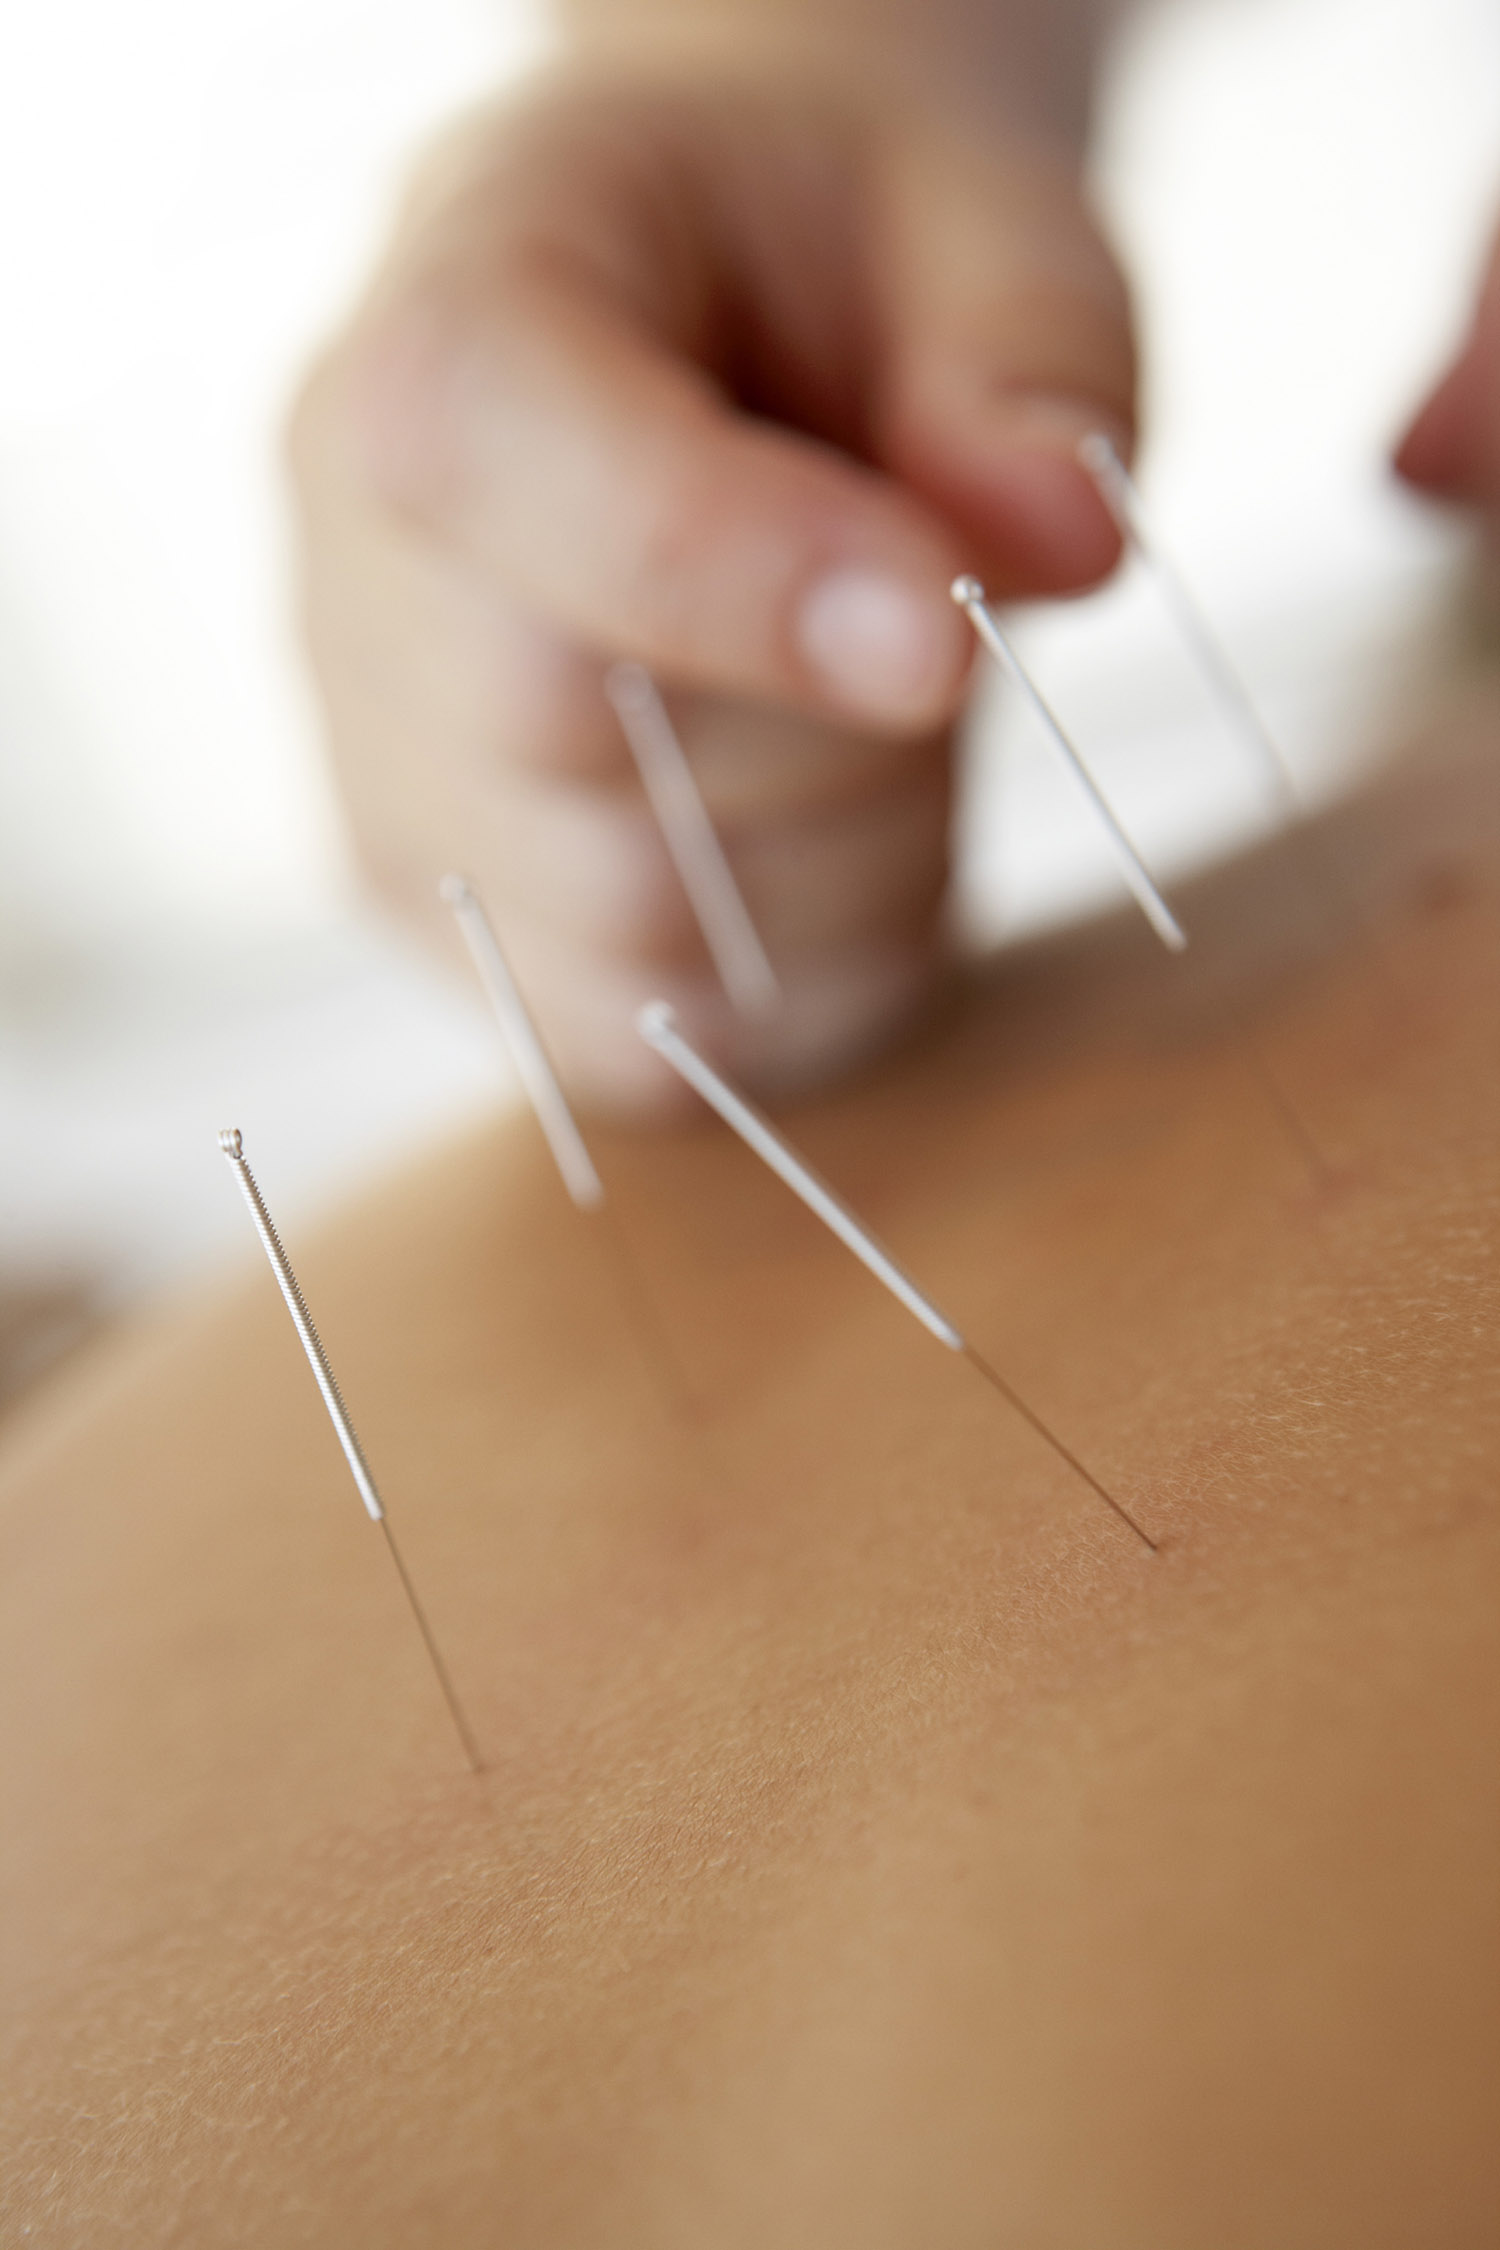 Acupuncture For Thyroid